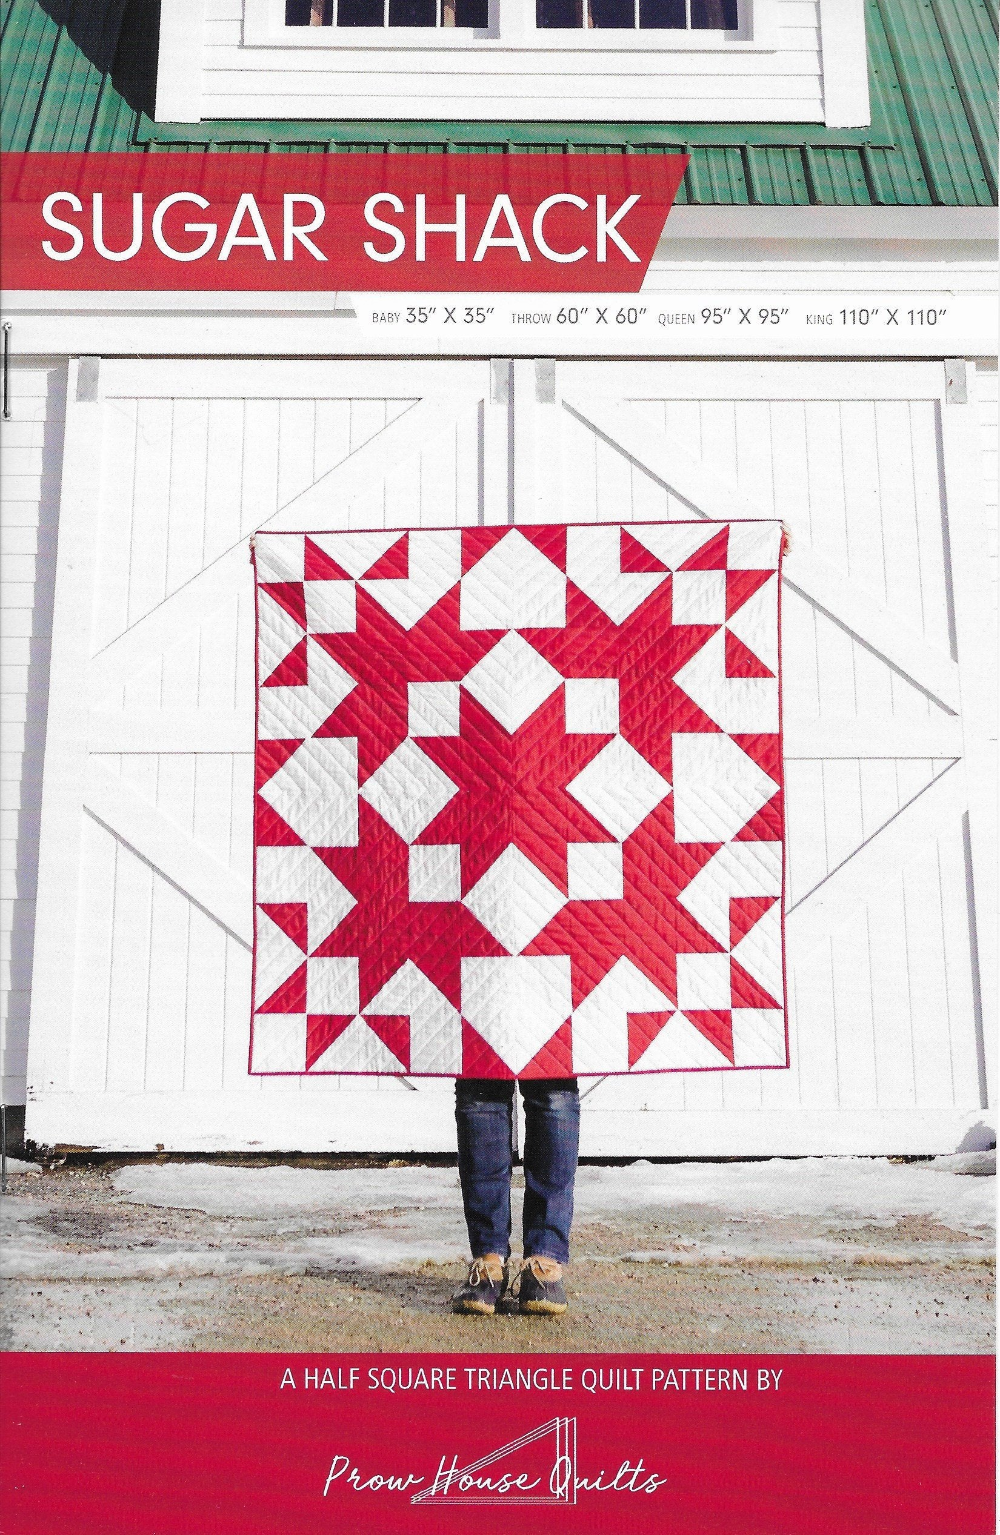 Quilt Pattern Sugar Shack Pieced Quilt Star Quilt Half Square Triangle Twin Bed Quilt P Half Square Triangle Quilts Pattern Triangle Quilt Pattern Quilts